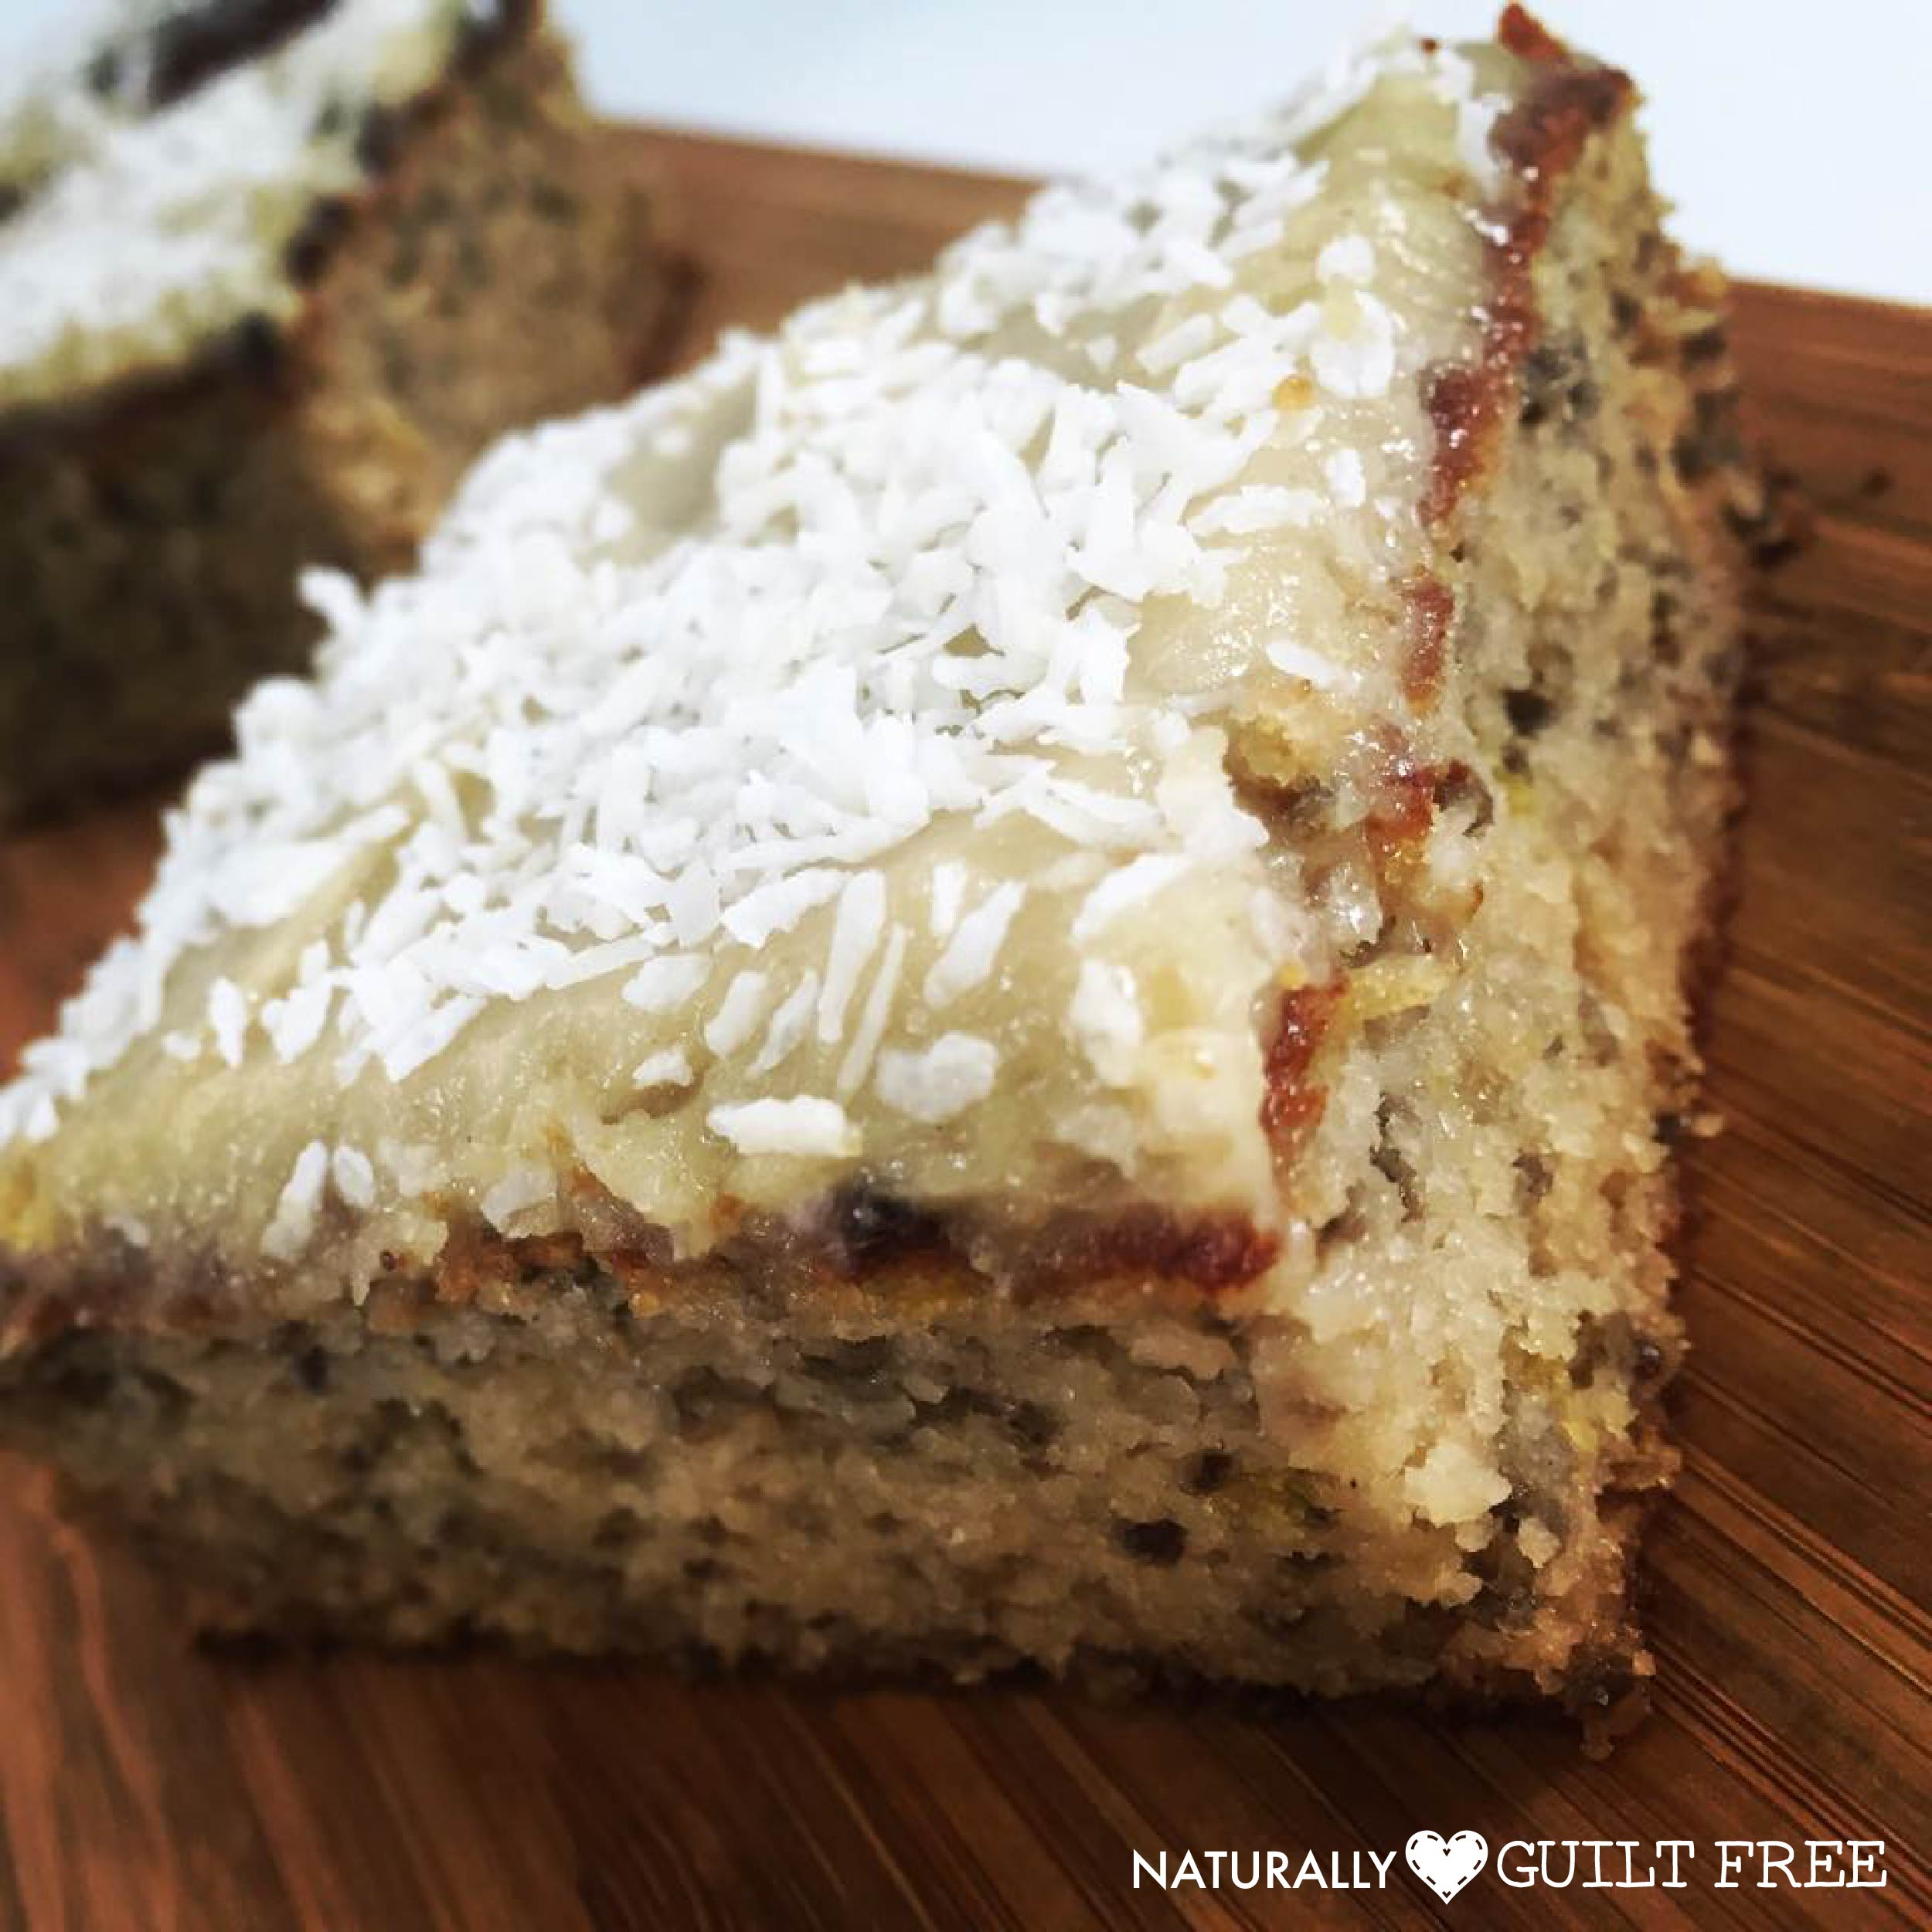 A moist, deliciously zesty lemon cake, with a creamy topping naturally free from all the nasties. With added superfood boost from chia seeds.